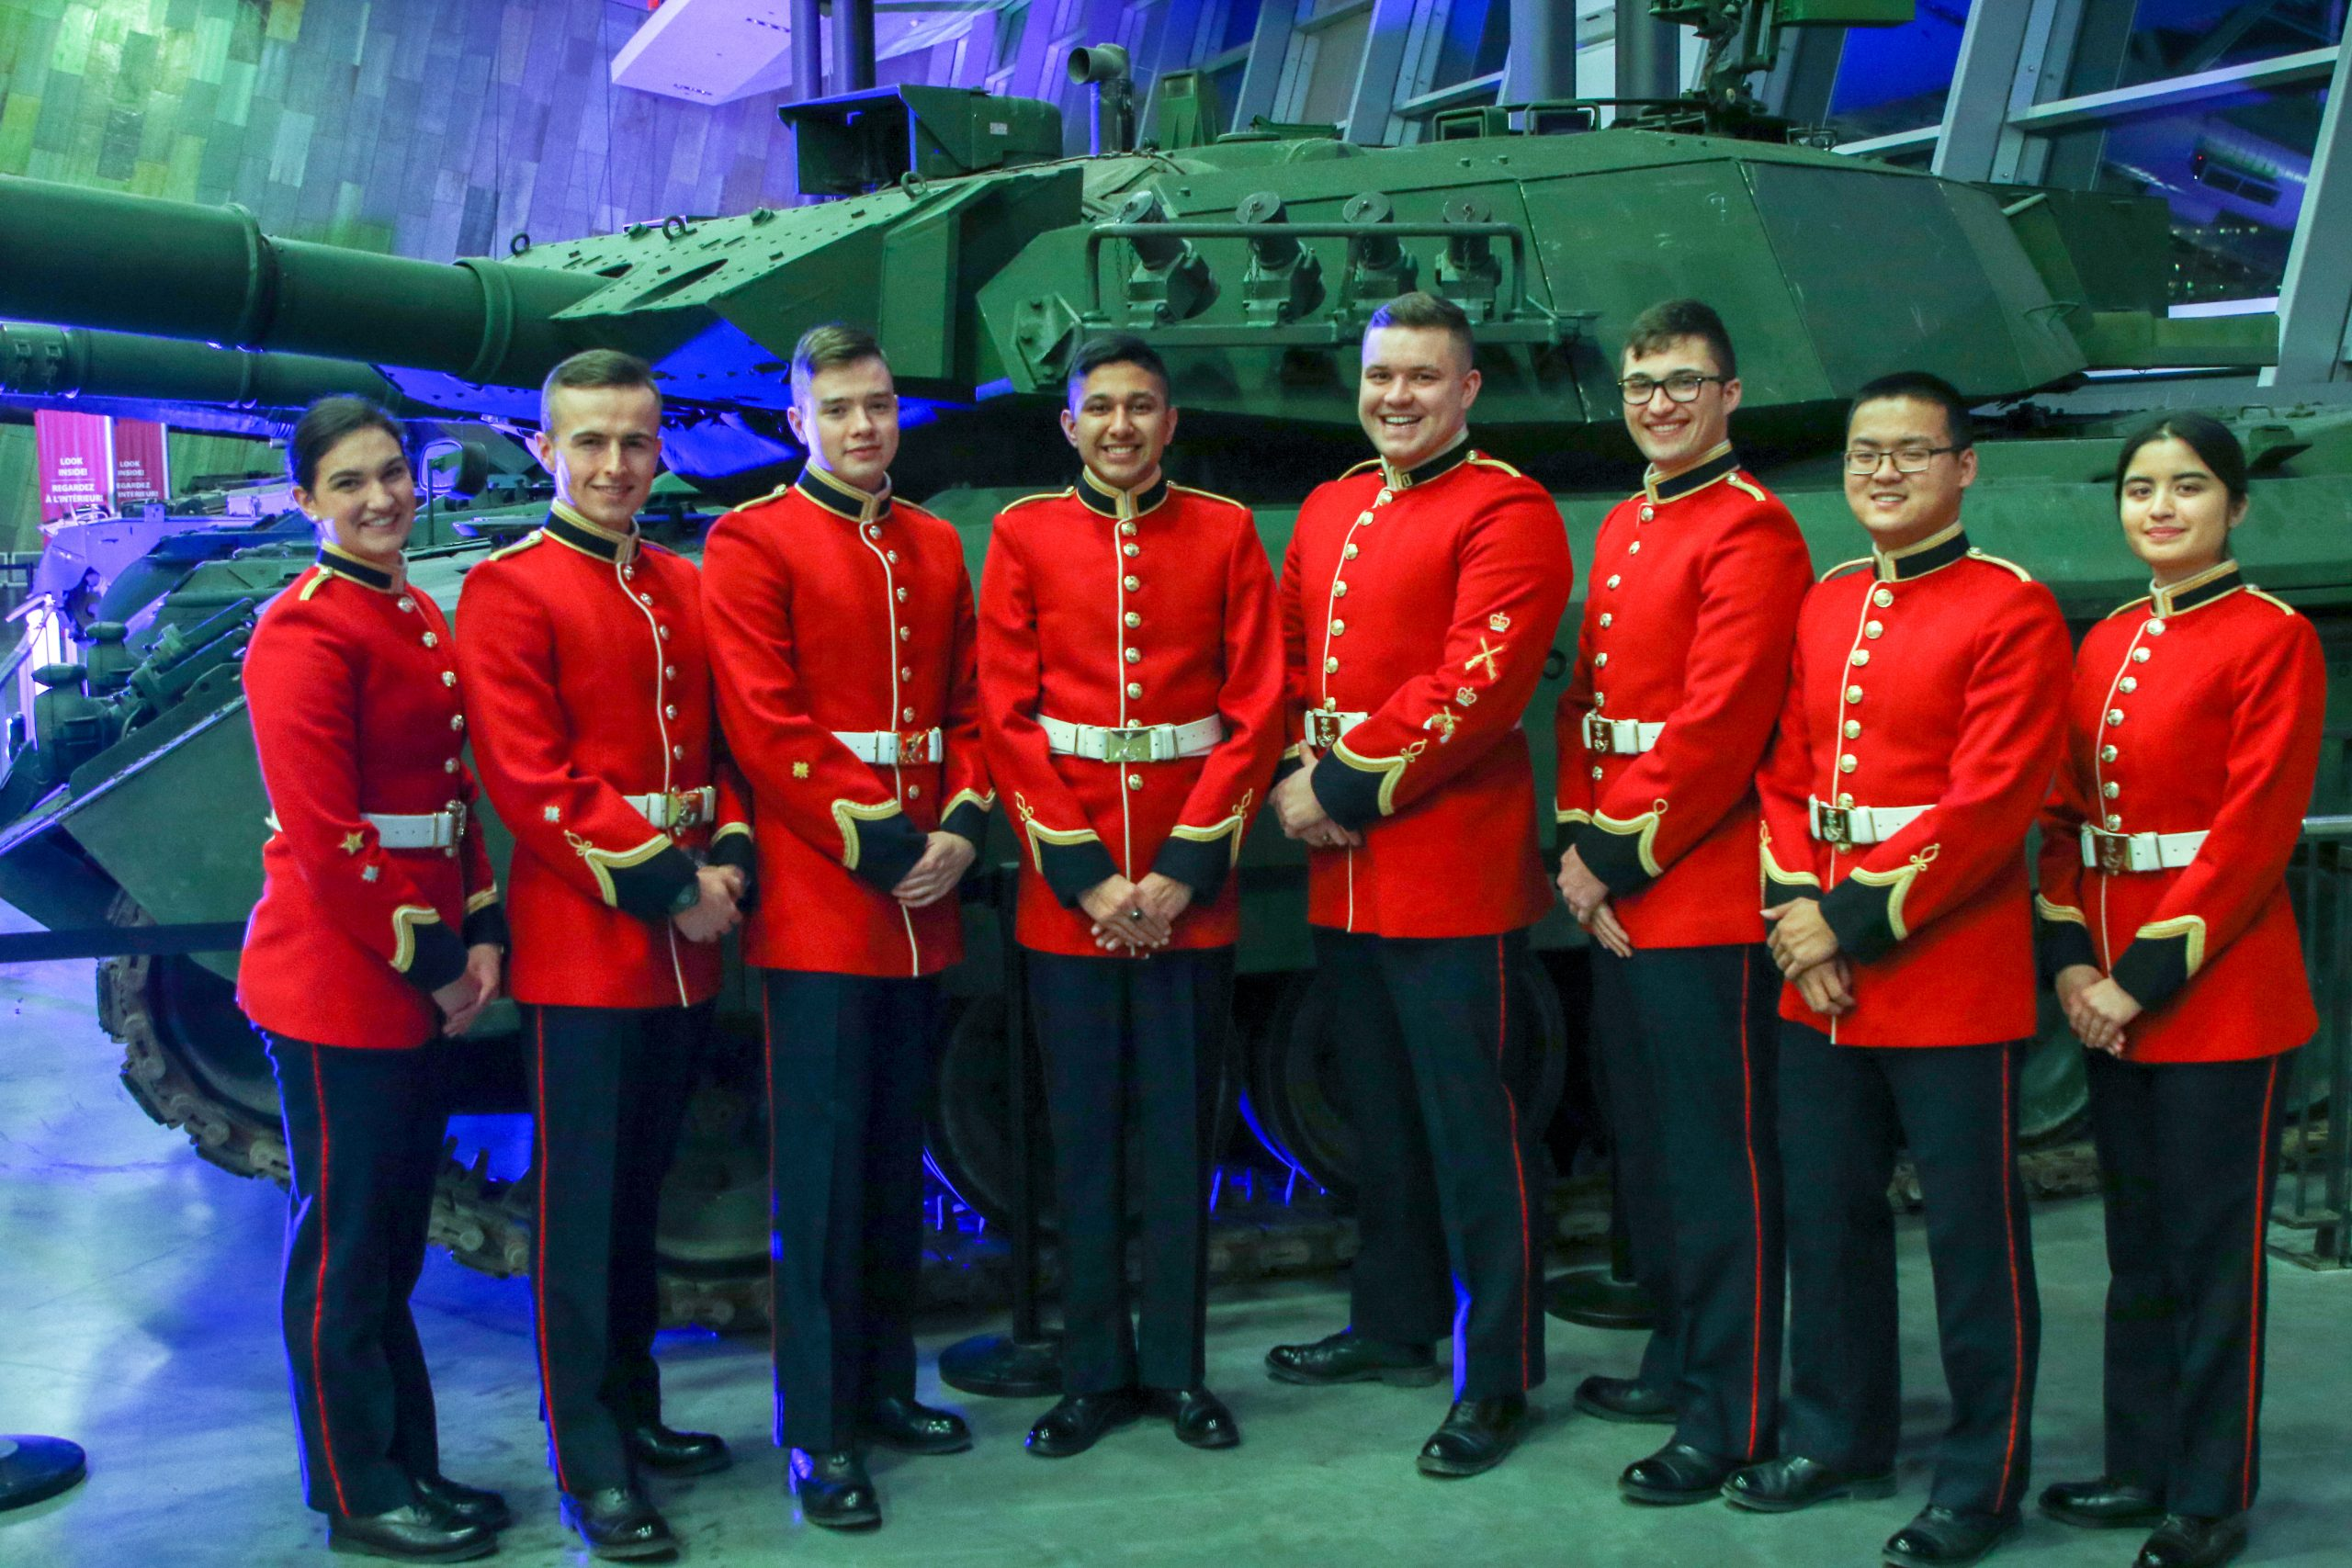 RMC Debate and International Affairs Society in front of tank display